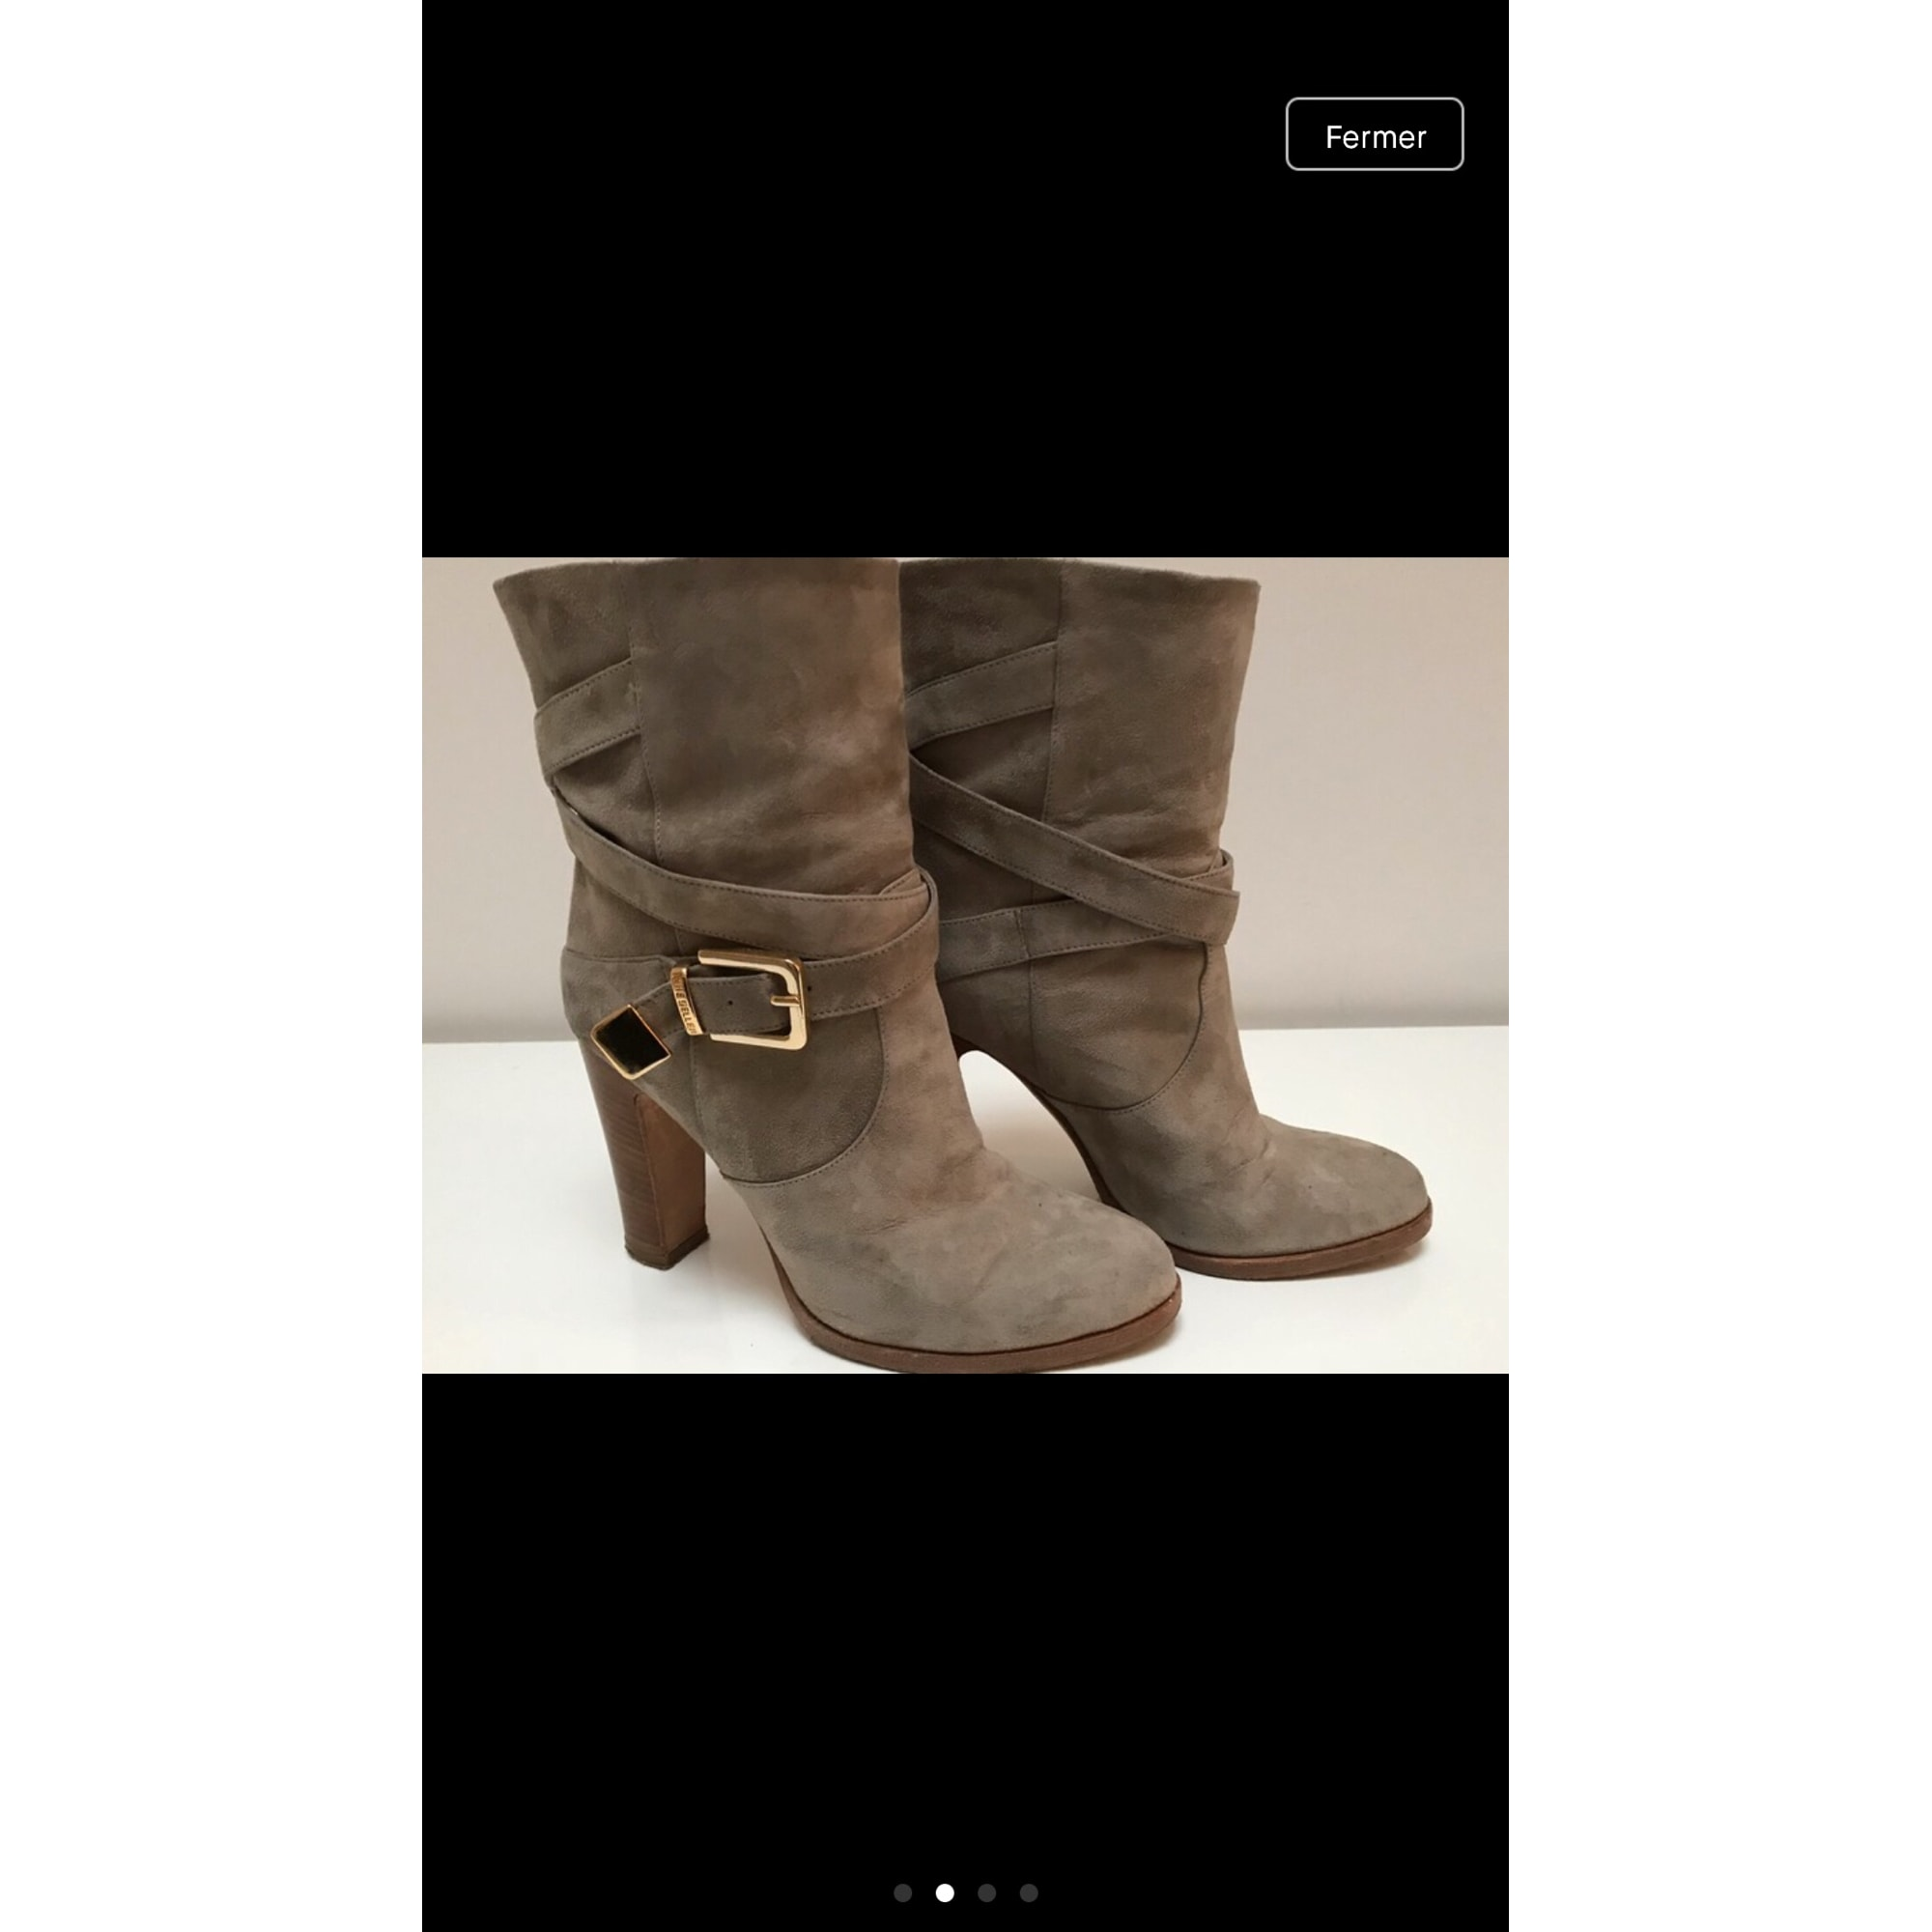 Bottines & low boots à talons THE SELLER Beige, camel